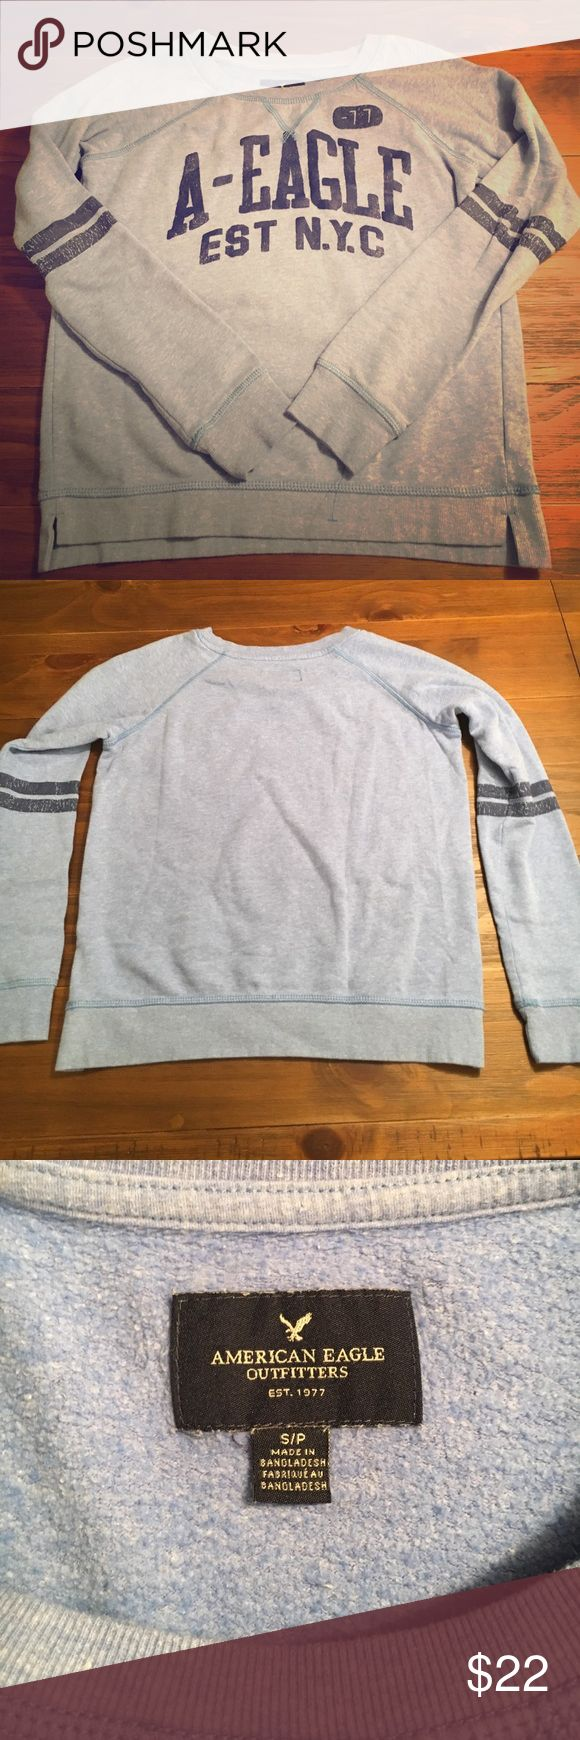 American Eagle sweatshirt Cute, perfect condition! Good to throw over a tank 😊 Size S American Eagle Outfitters Tops Sweatshirts & Hoodies